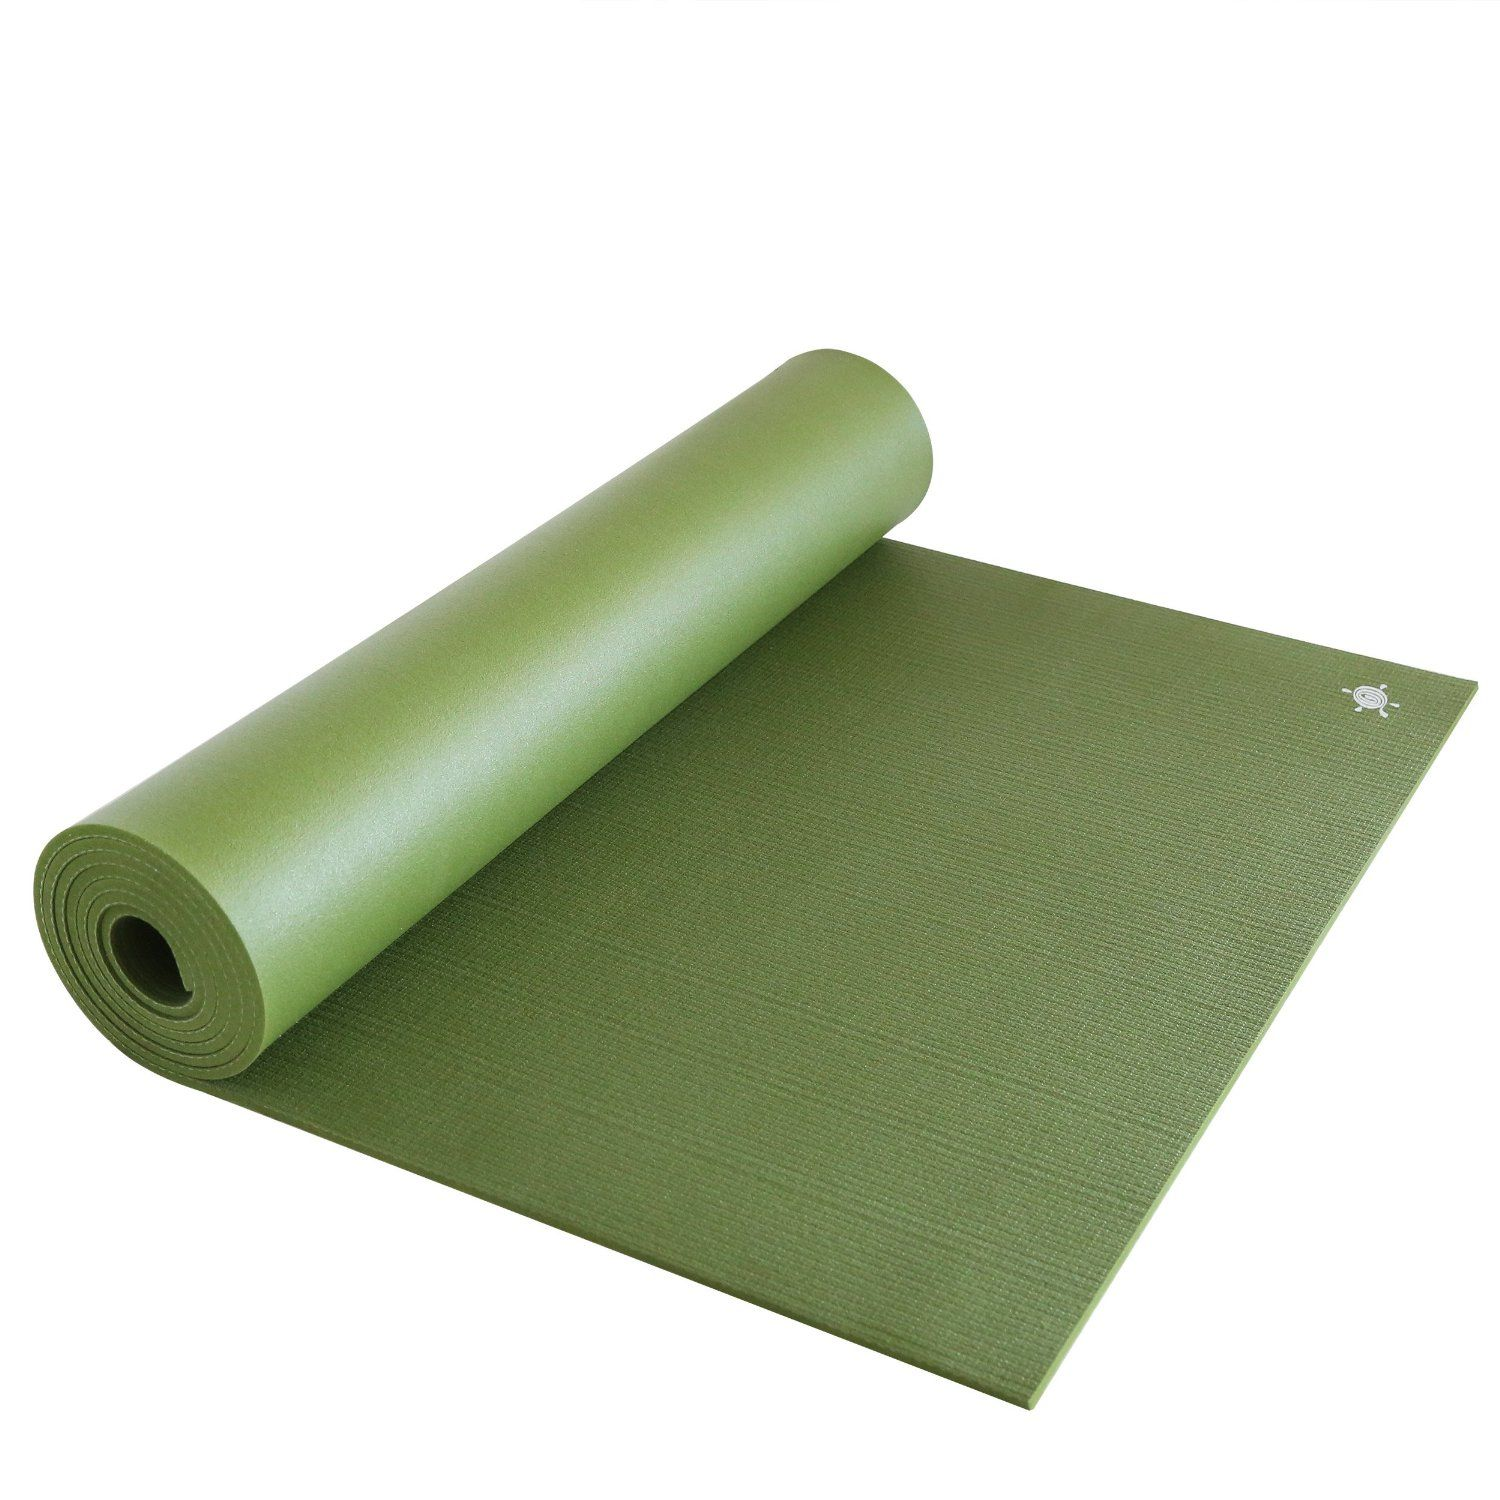 yoga classes academy jujutsu offered martial image mens highland fitness no s mat article at men arts get niche stretch healthy mats kempo